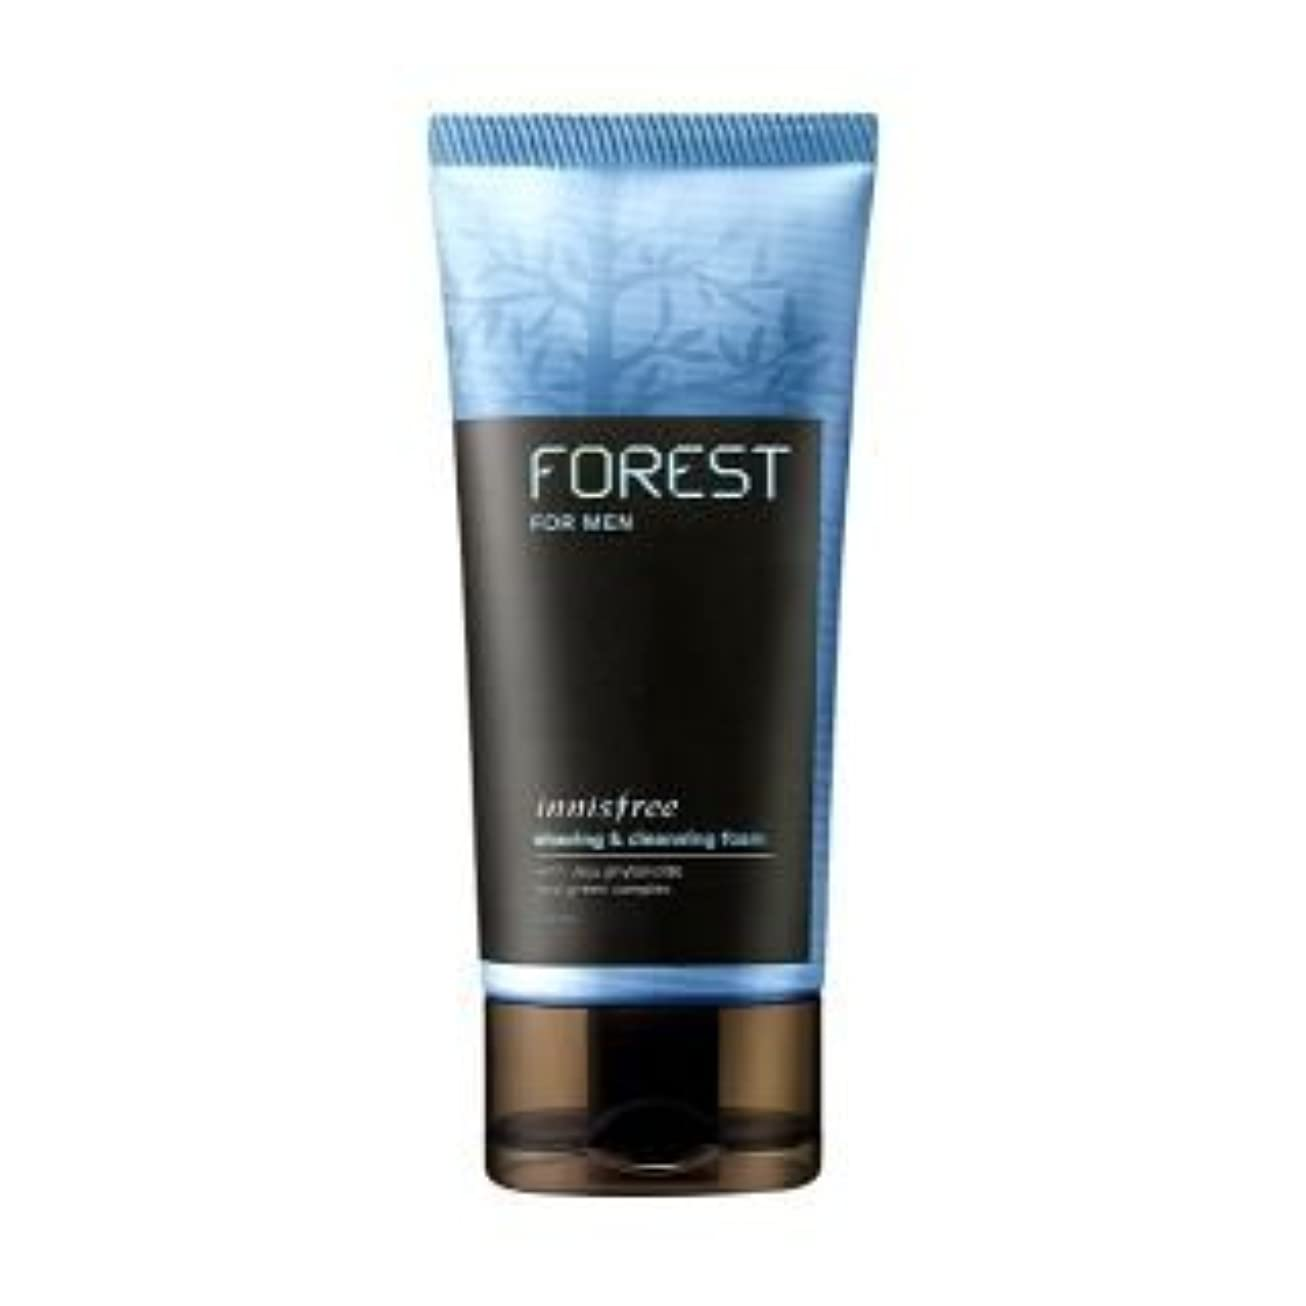 混雑信念王女[Innisfree] Forest For Men Shaving & Cleansing Foam 150ml by Innisfree [並行輸入品]